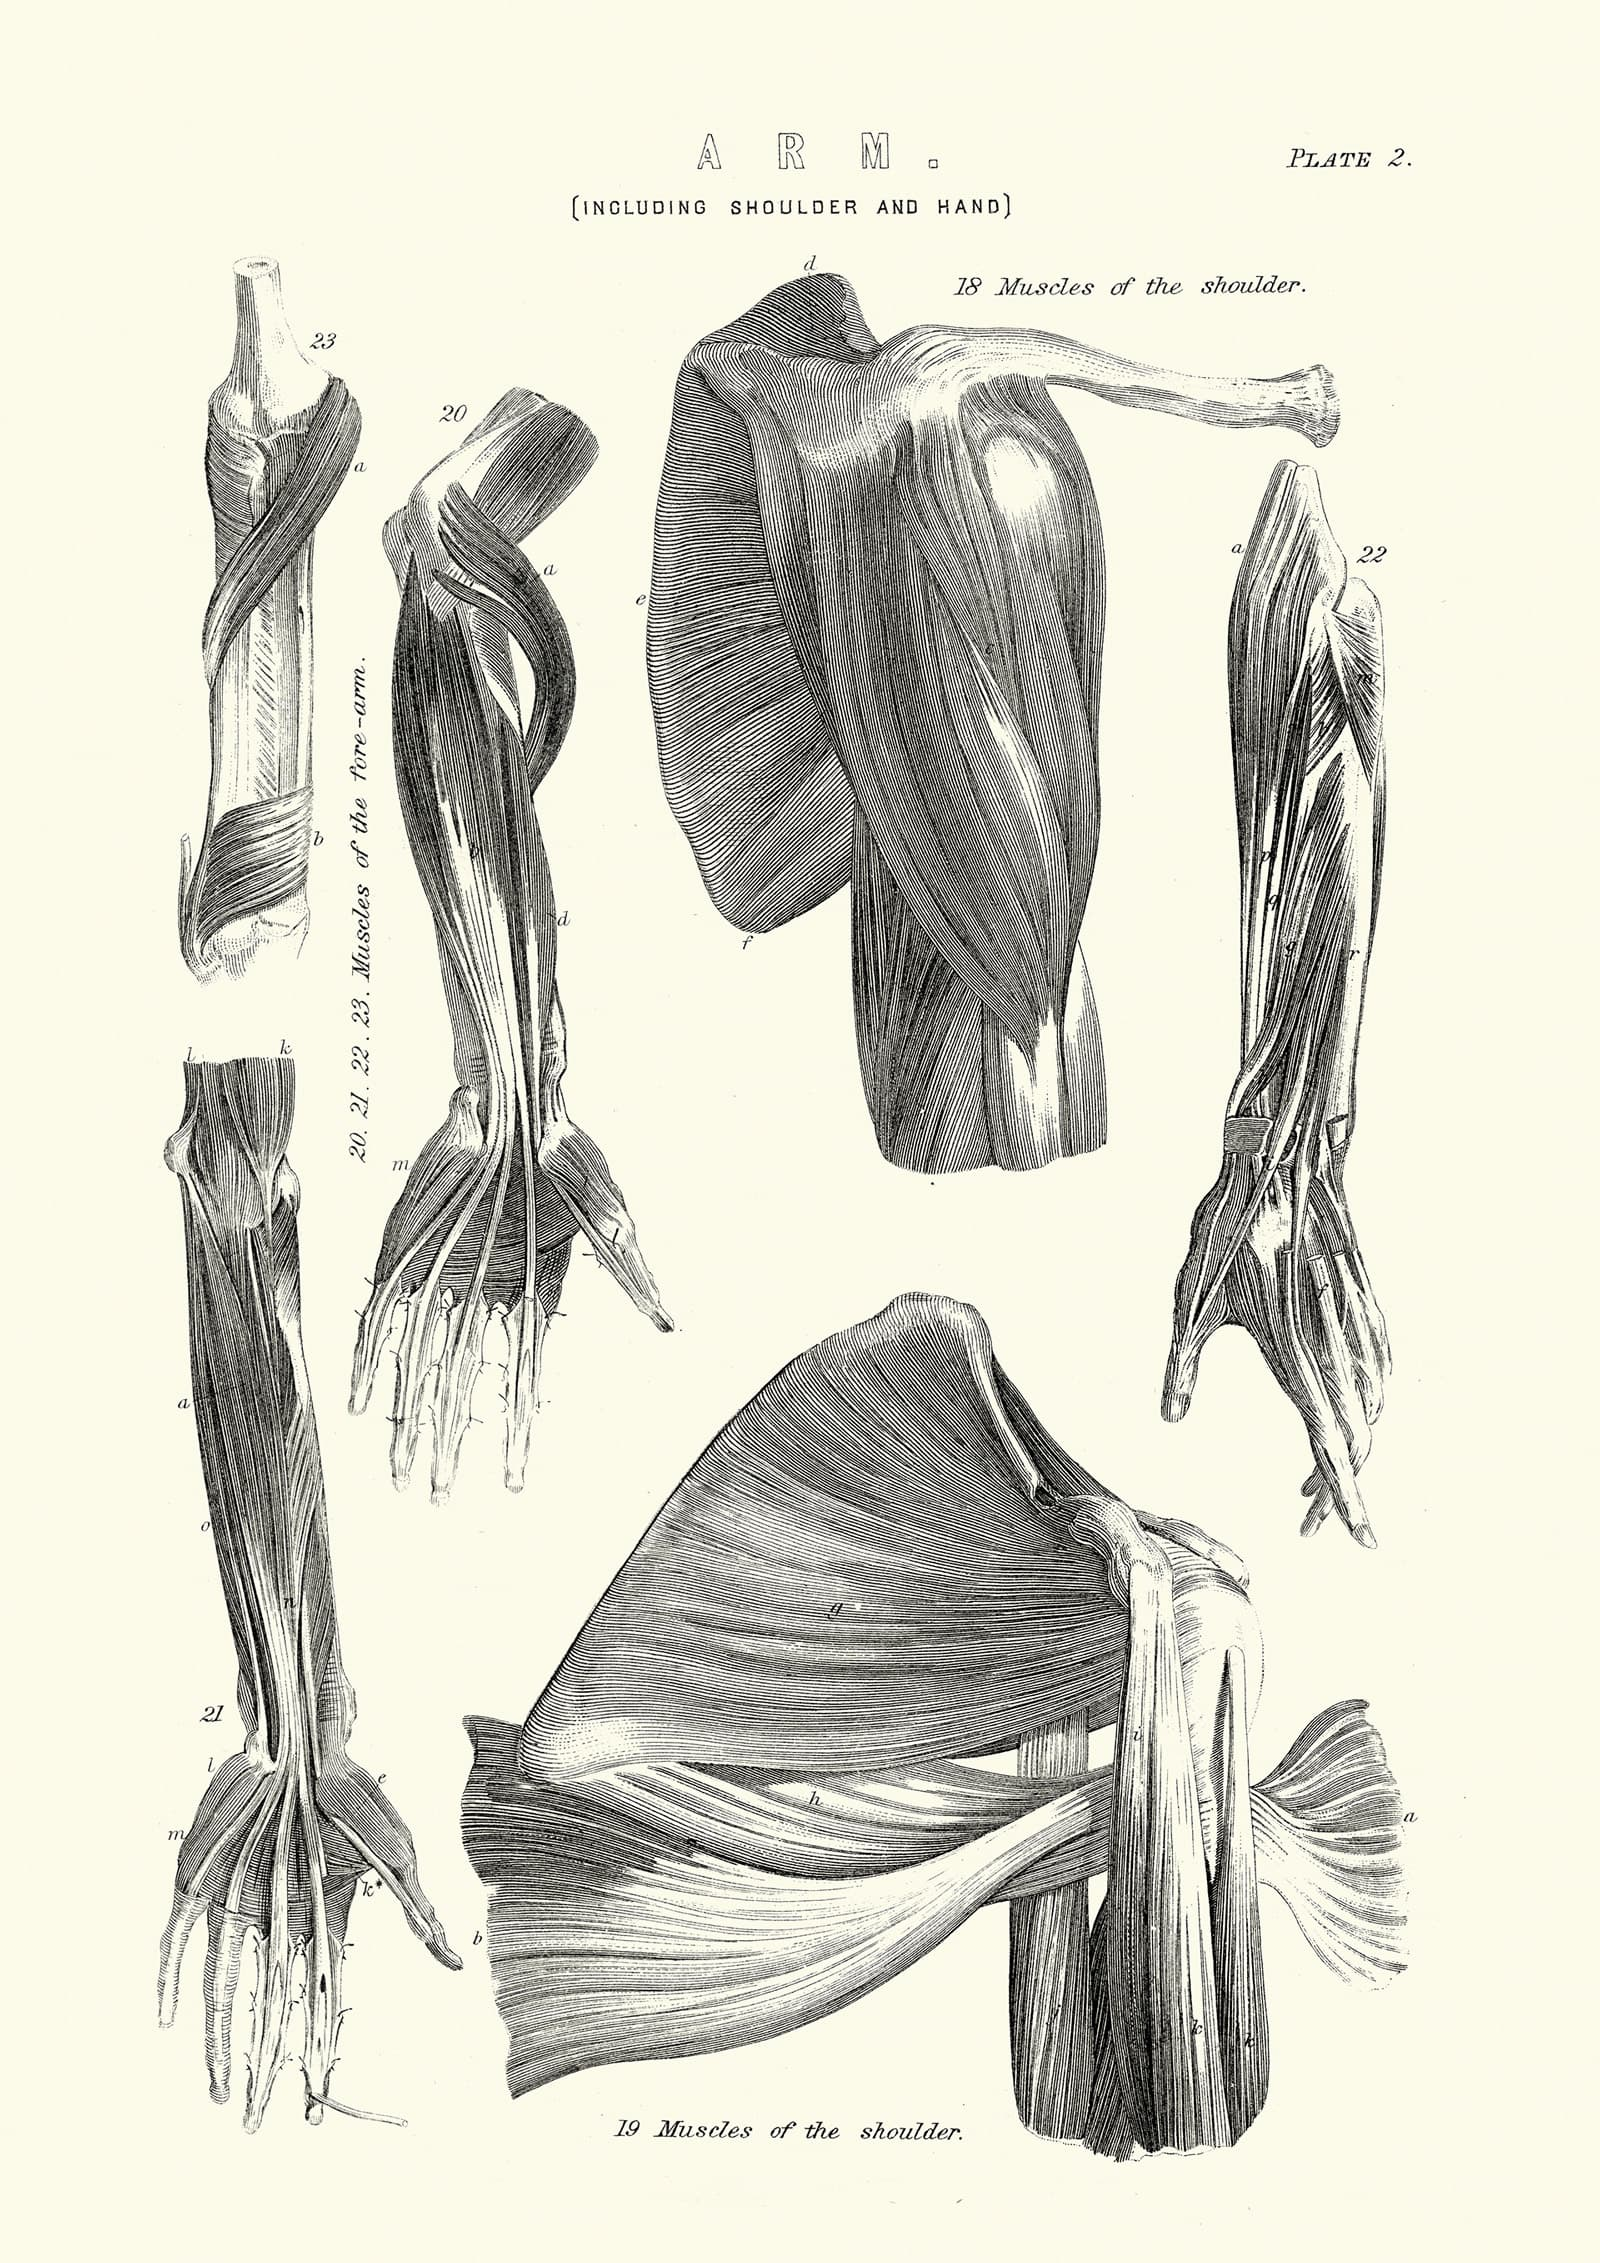 Greendragon sports cream Vintage engraving of Human anatomy, Muscles of the Arm including shoulder and hand, 19th Century